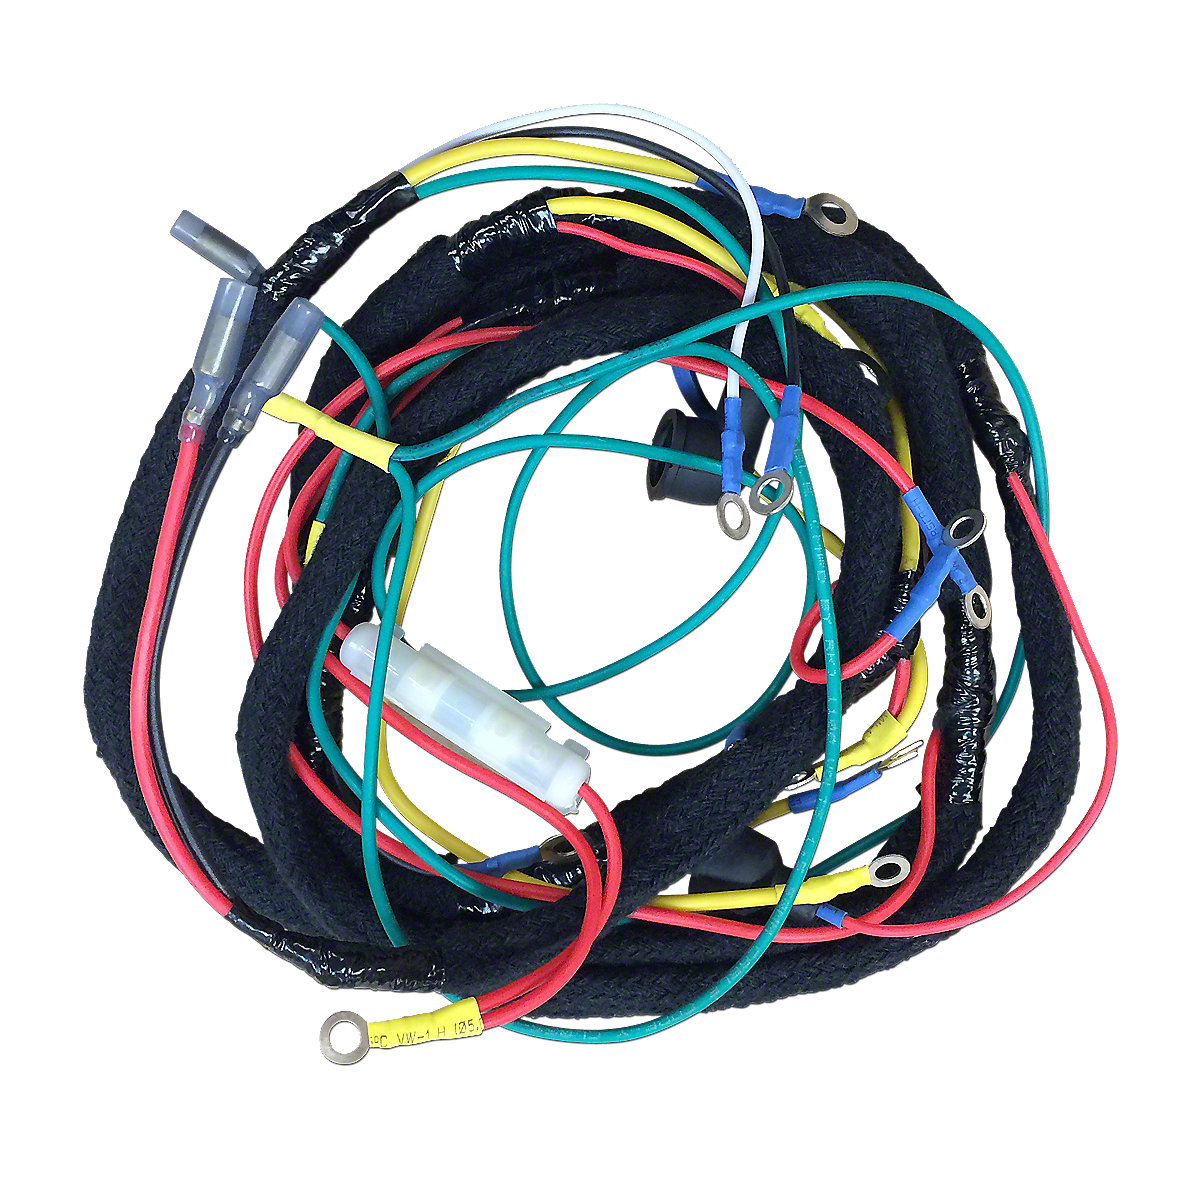 abc079 wiring harness harness